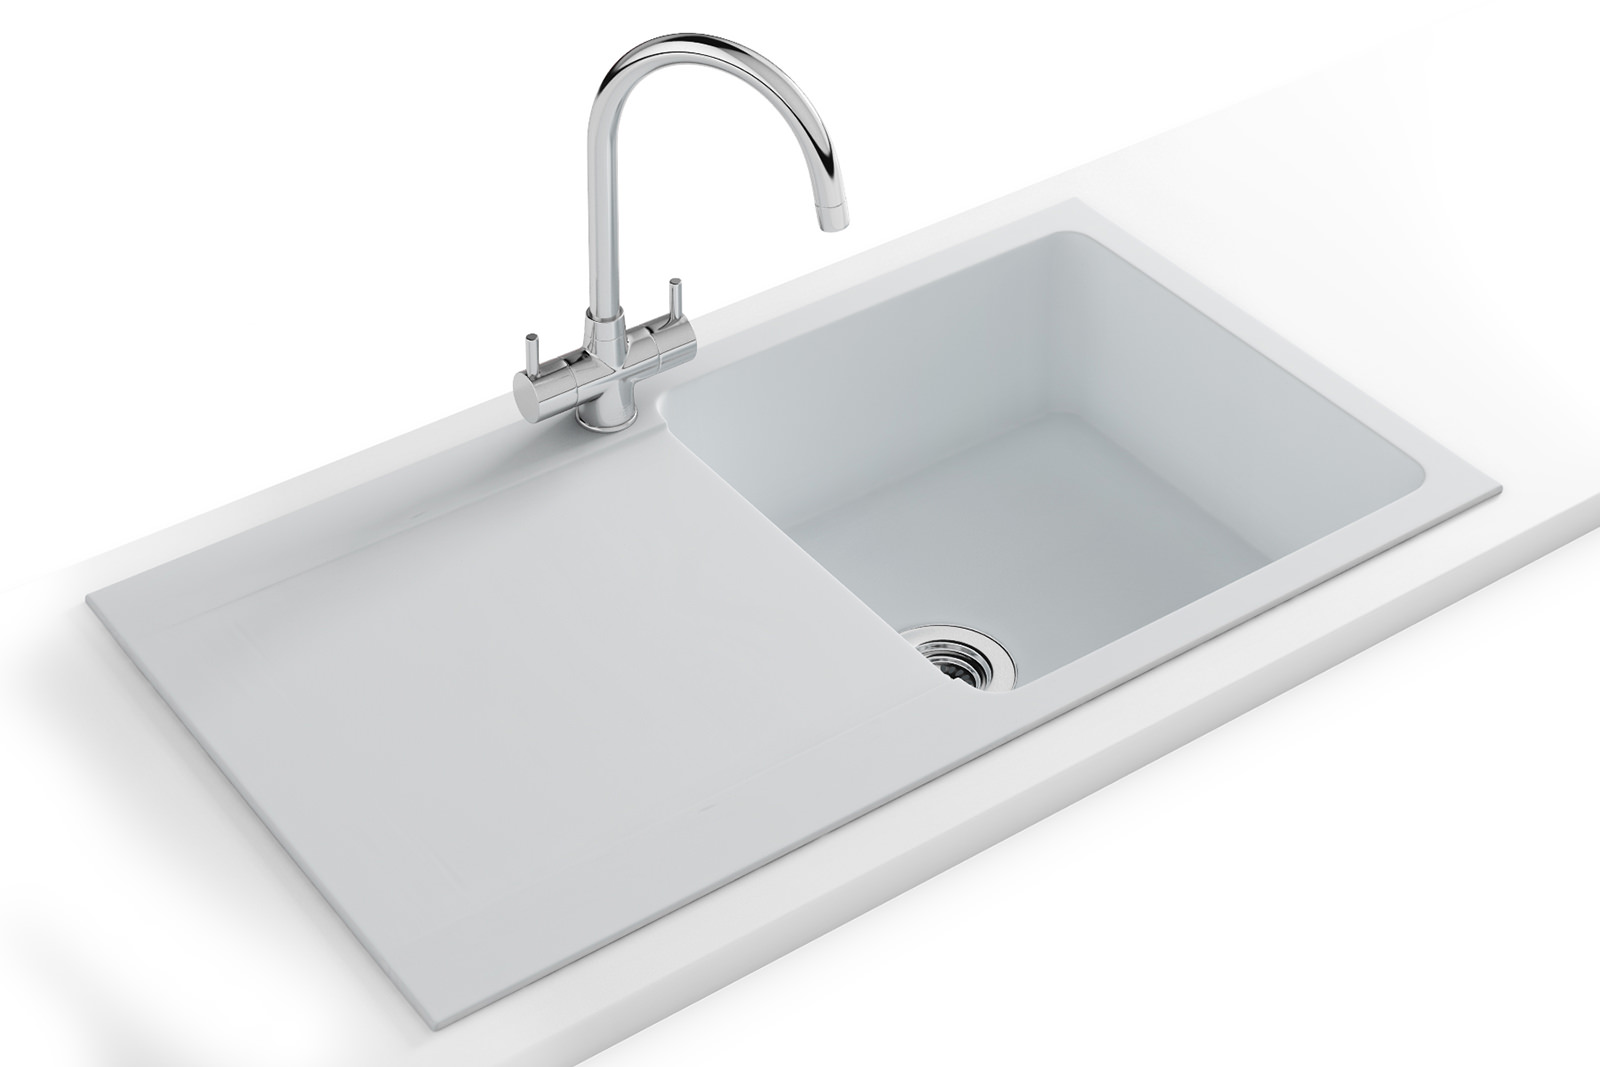 Franke Sinks And Taps : Franke Orion Propack OID 611-94 Tectonite Polar White Sink And Tap ...